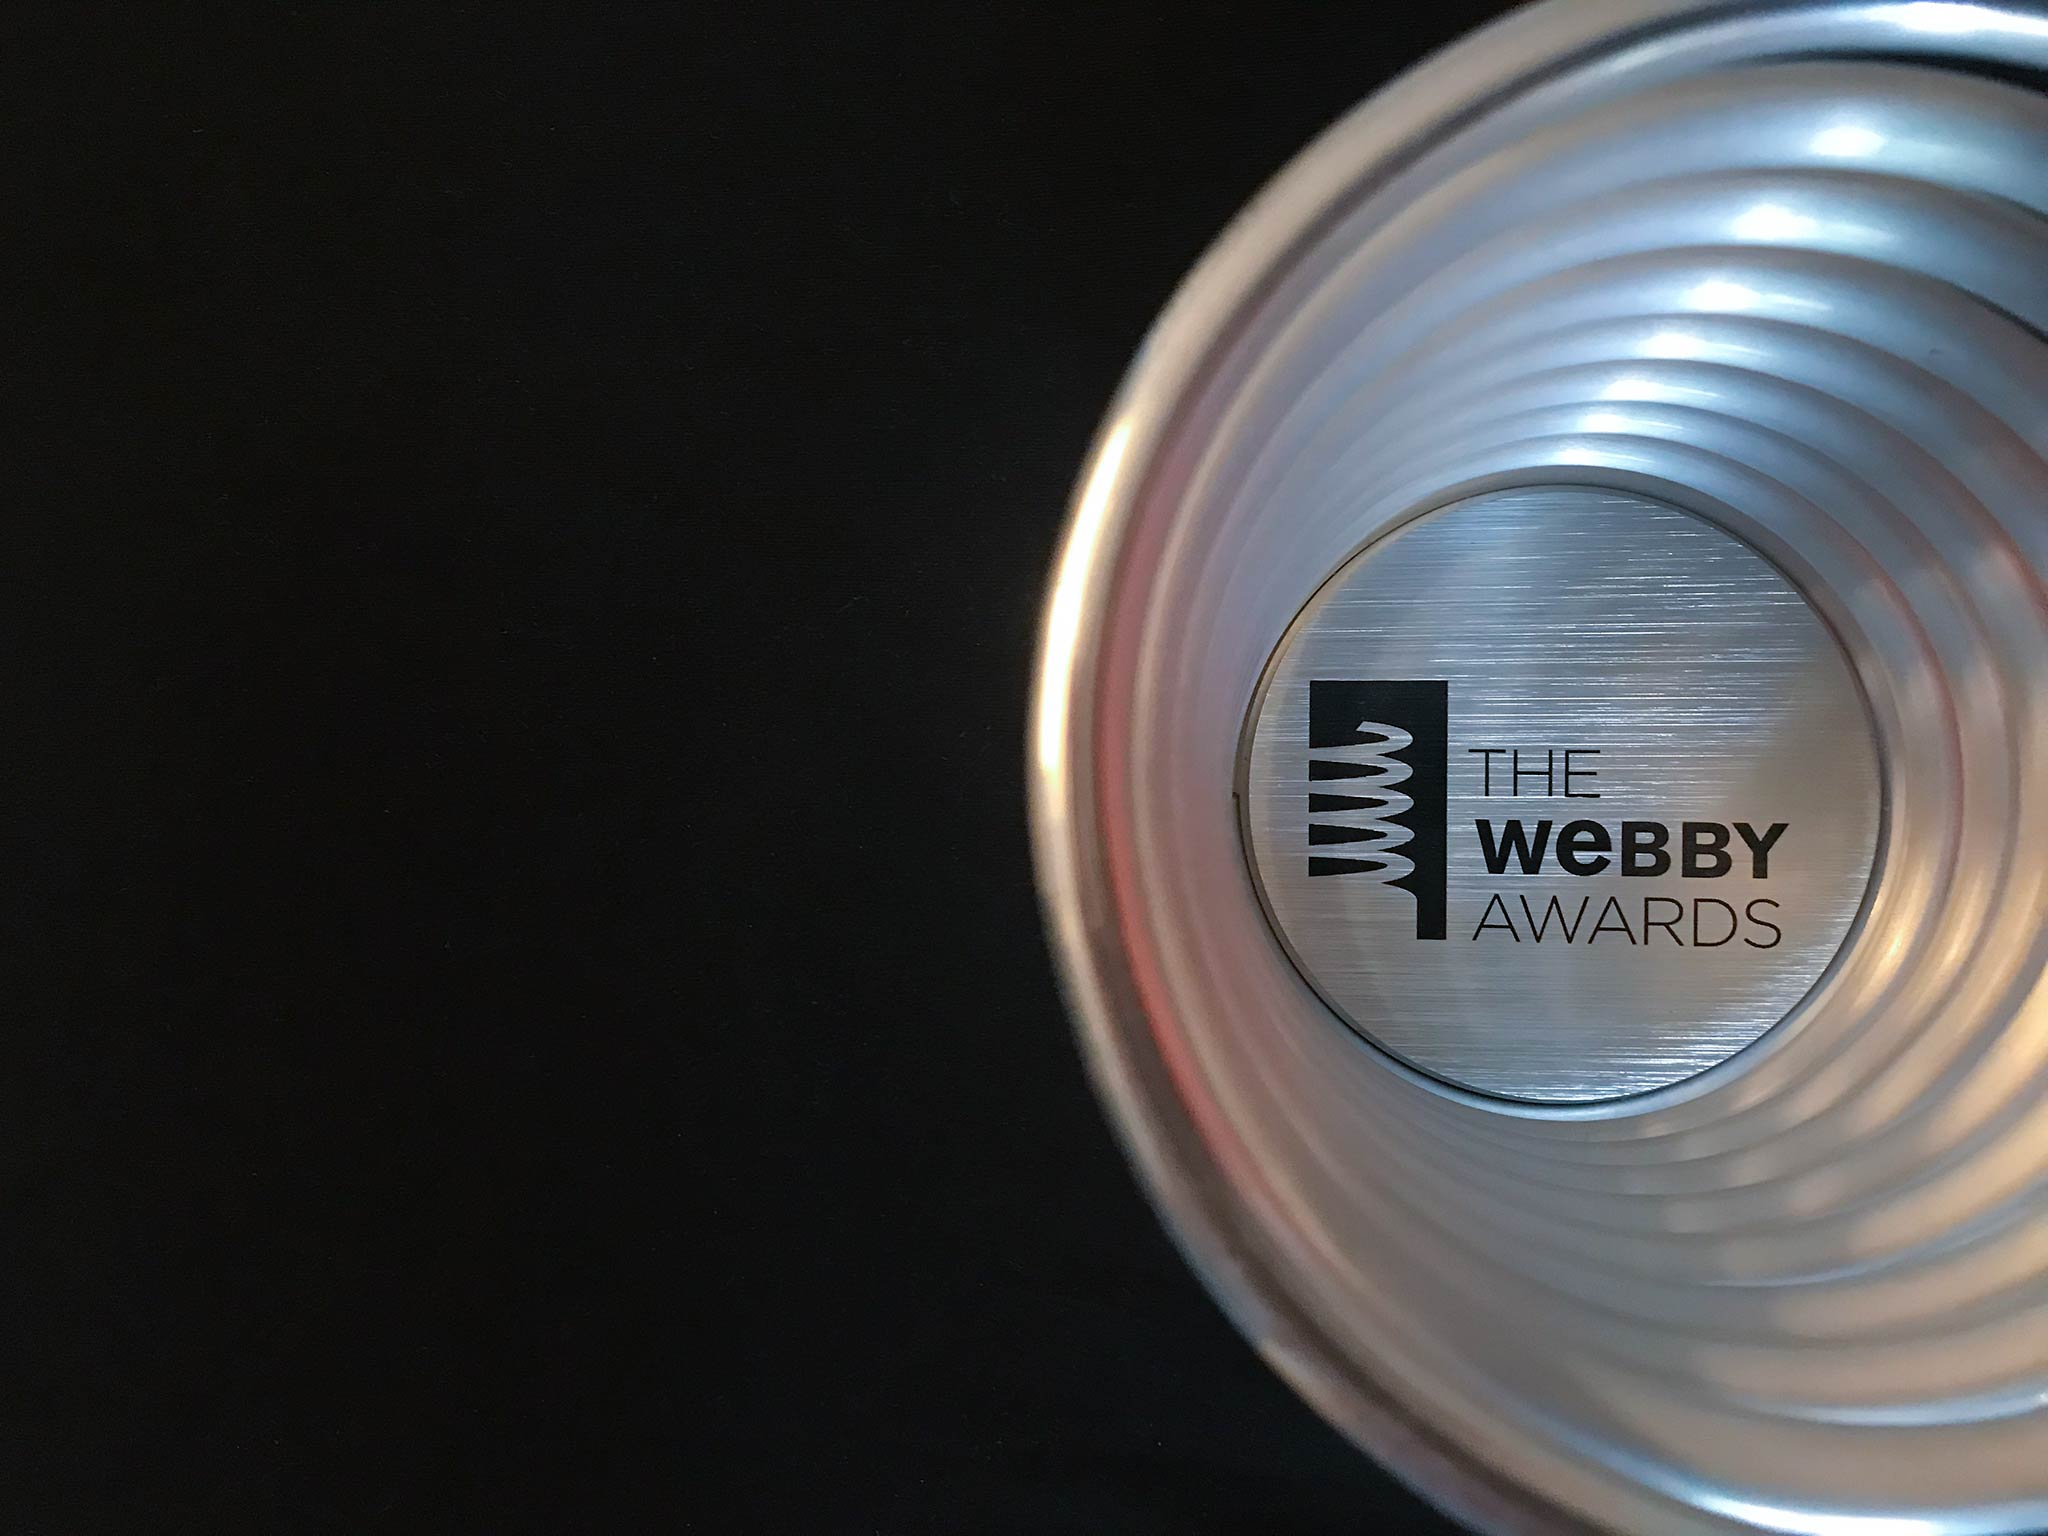 What If Named the Best Science & Education Video Series at the 24th Annual Webby Awards